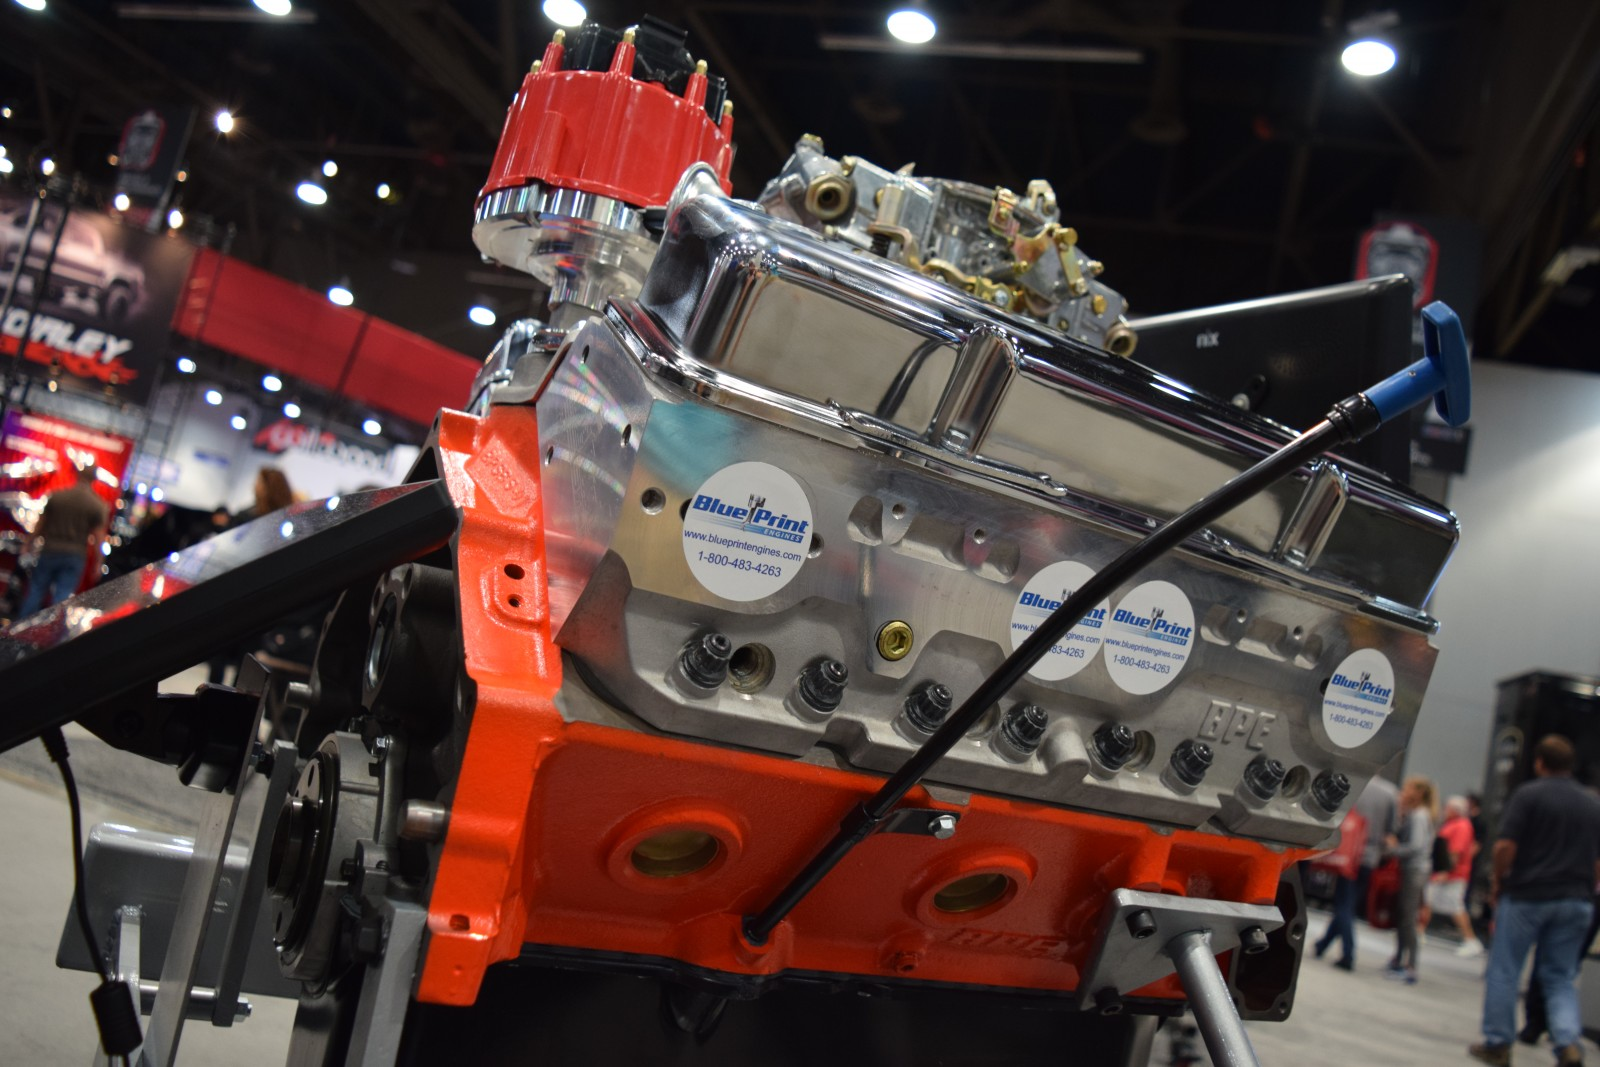 Blueprint engines to showcase new chevrolet 400 engine line at sema blueprint engines to showcase new chevrolet 400 engine line at sema 2015 onallcylinders malvernweather Images